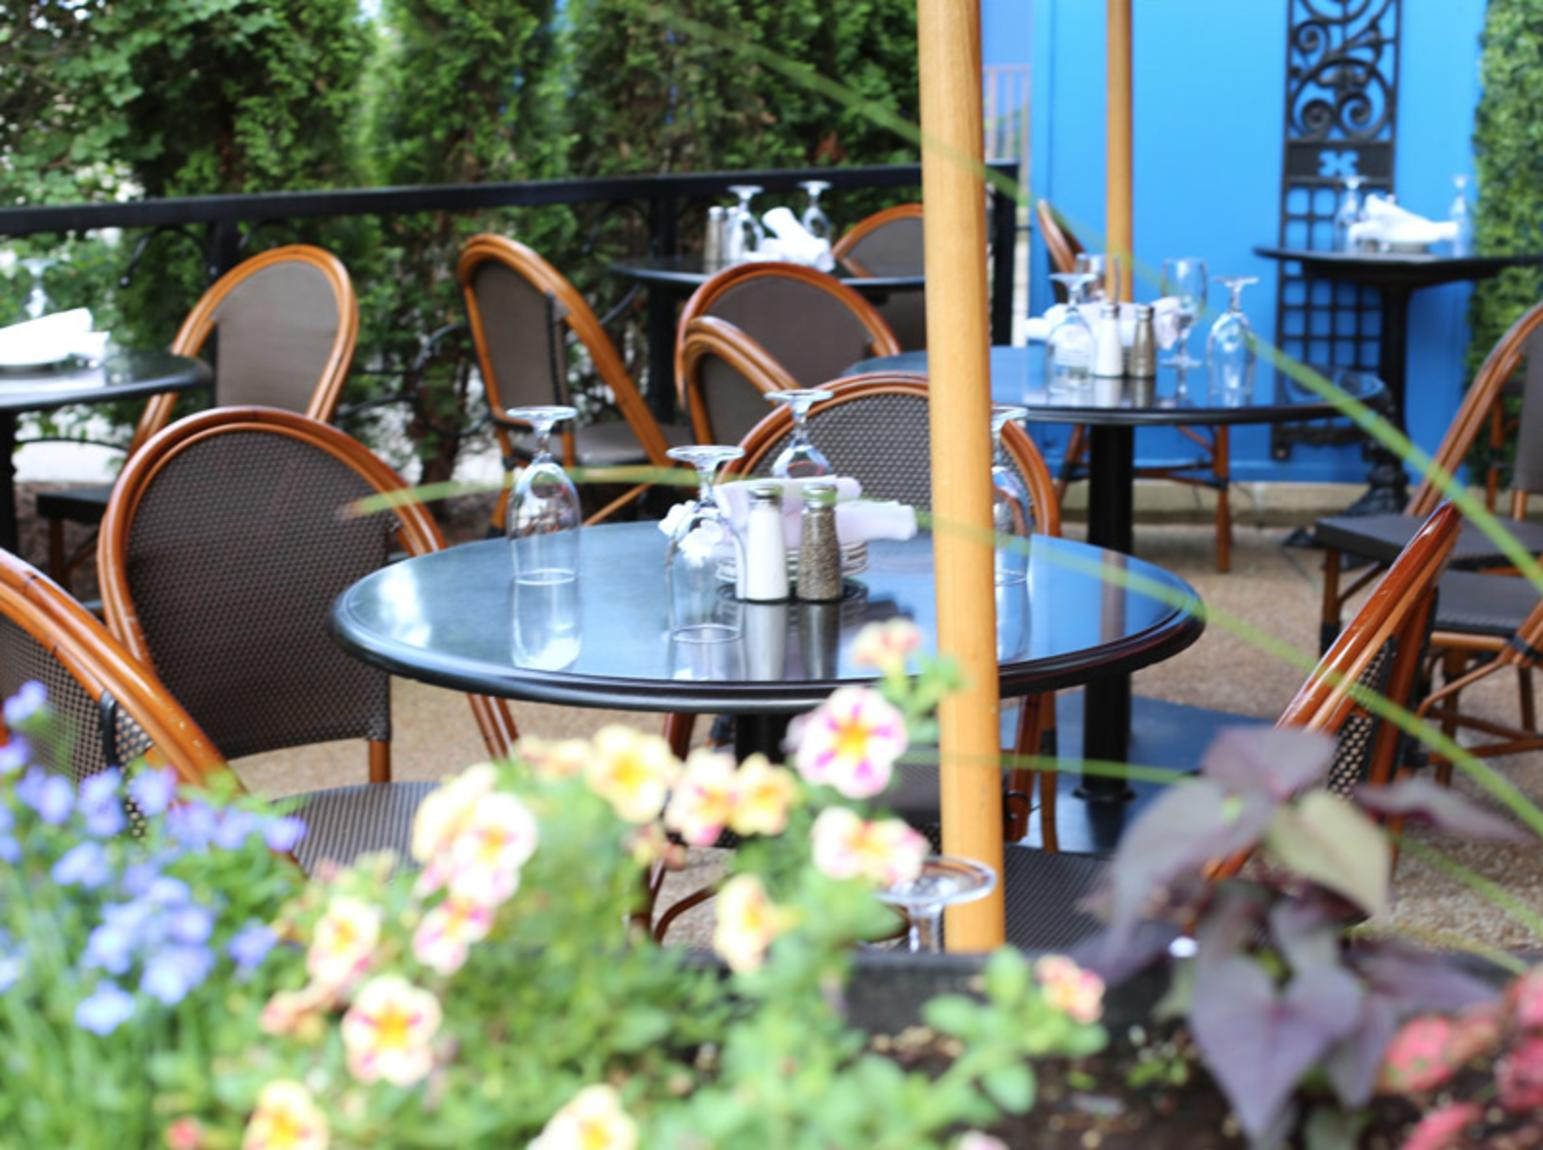 Outdoor patio at a restaurant